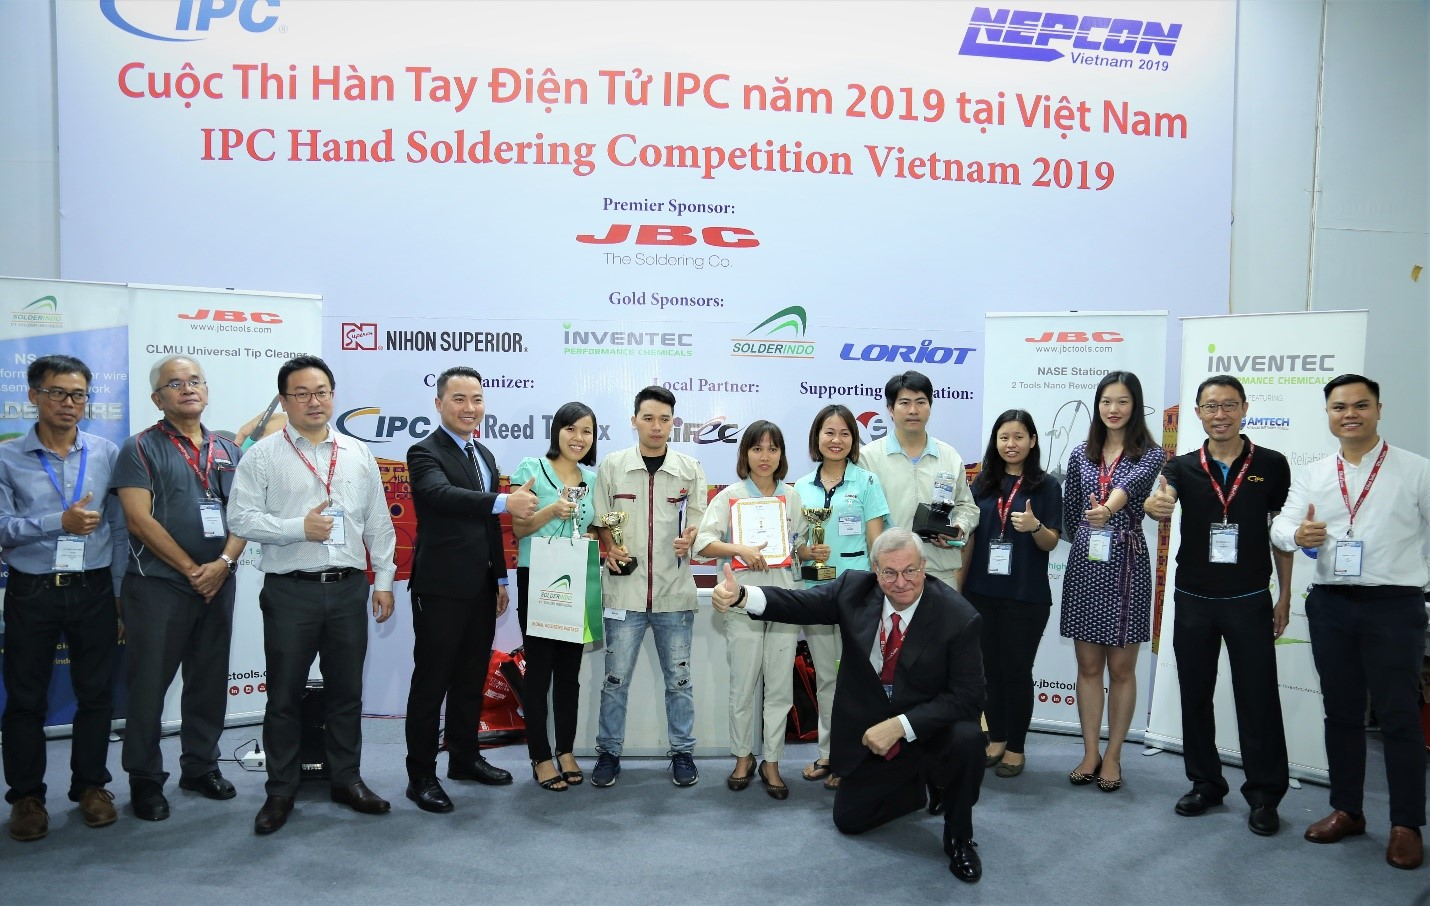 IPC Hand Soldering Competition Winner Crowned at NEPCON Vietnam 2019 in Hanoi, Vietnam